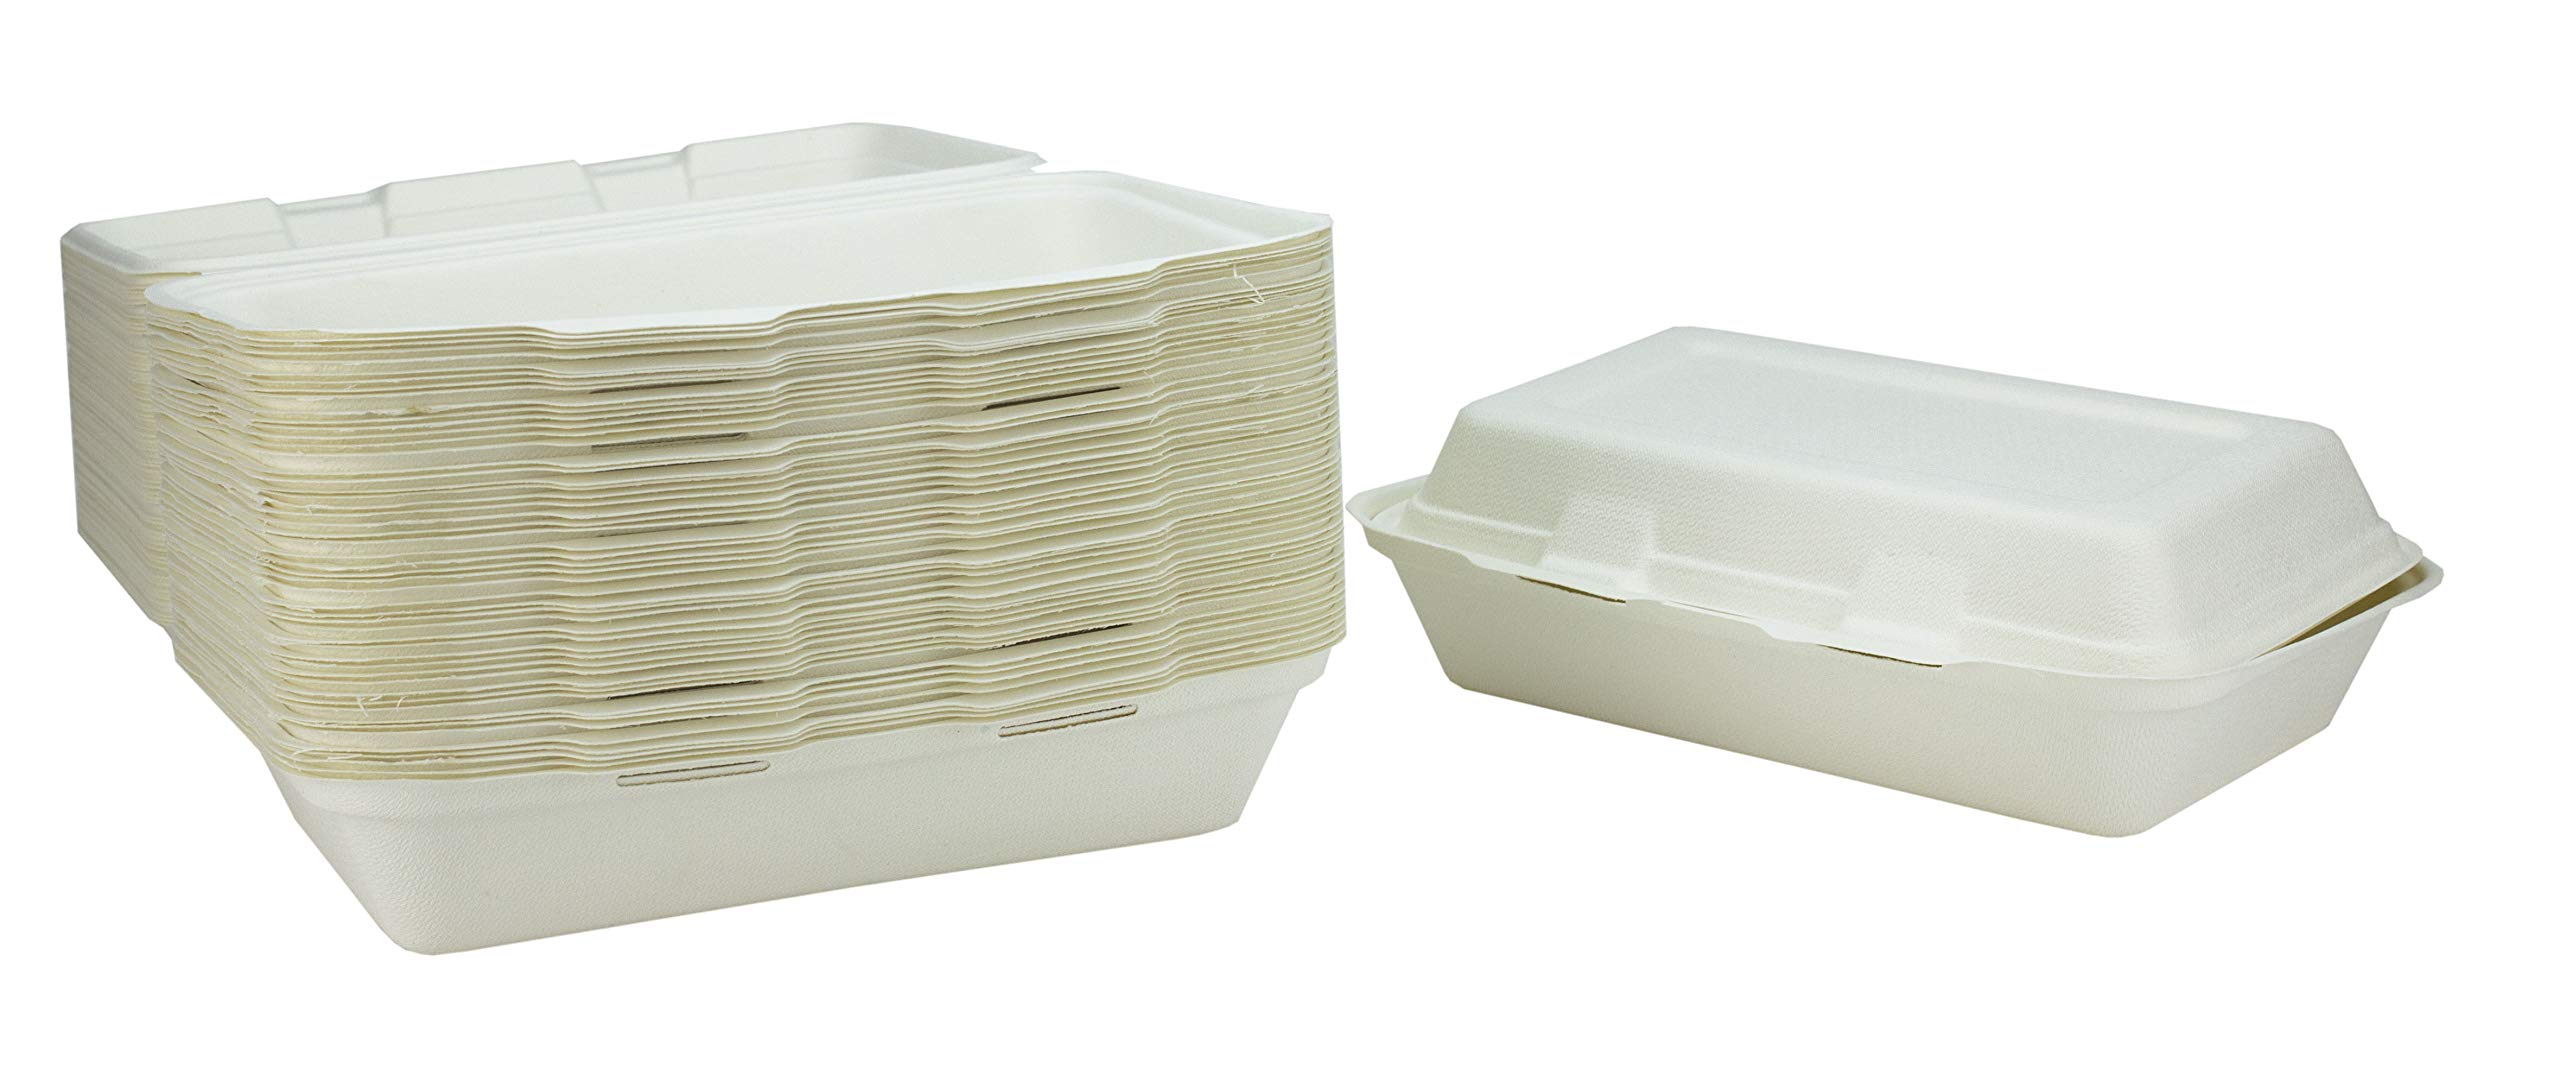 Bagasse 1 Compartment Take Away Box - 165 x 240 x 80mm - Set of 50 - Super Rigid Biodegradable, Compostable, and Recyclable Disposable Menu Boxes - Made from Natural Sugar Cane Pulp